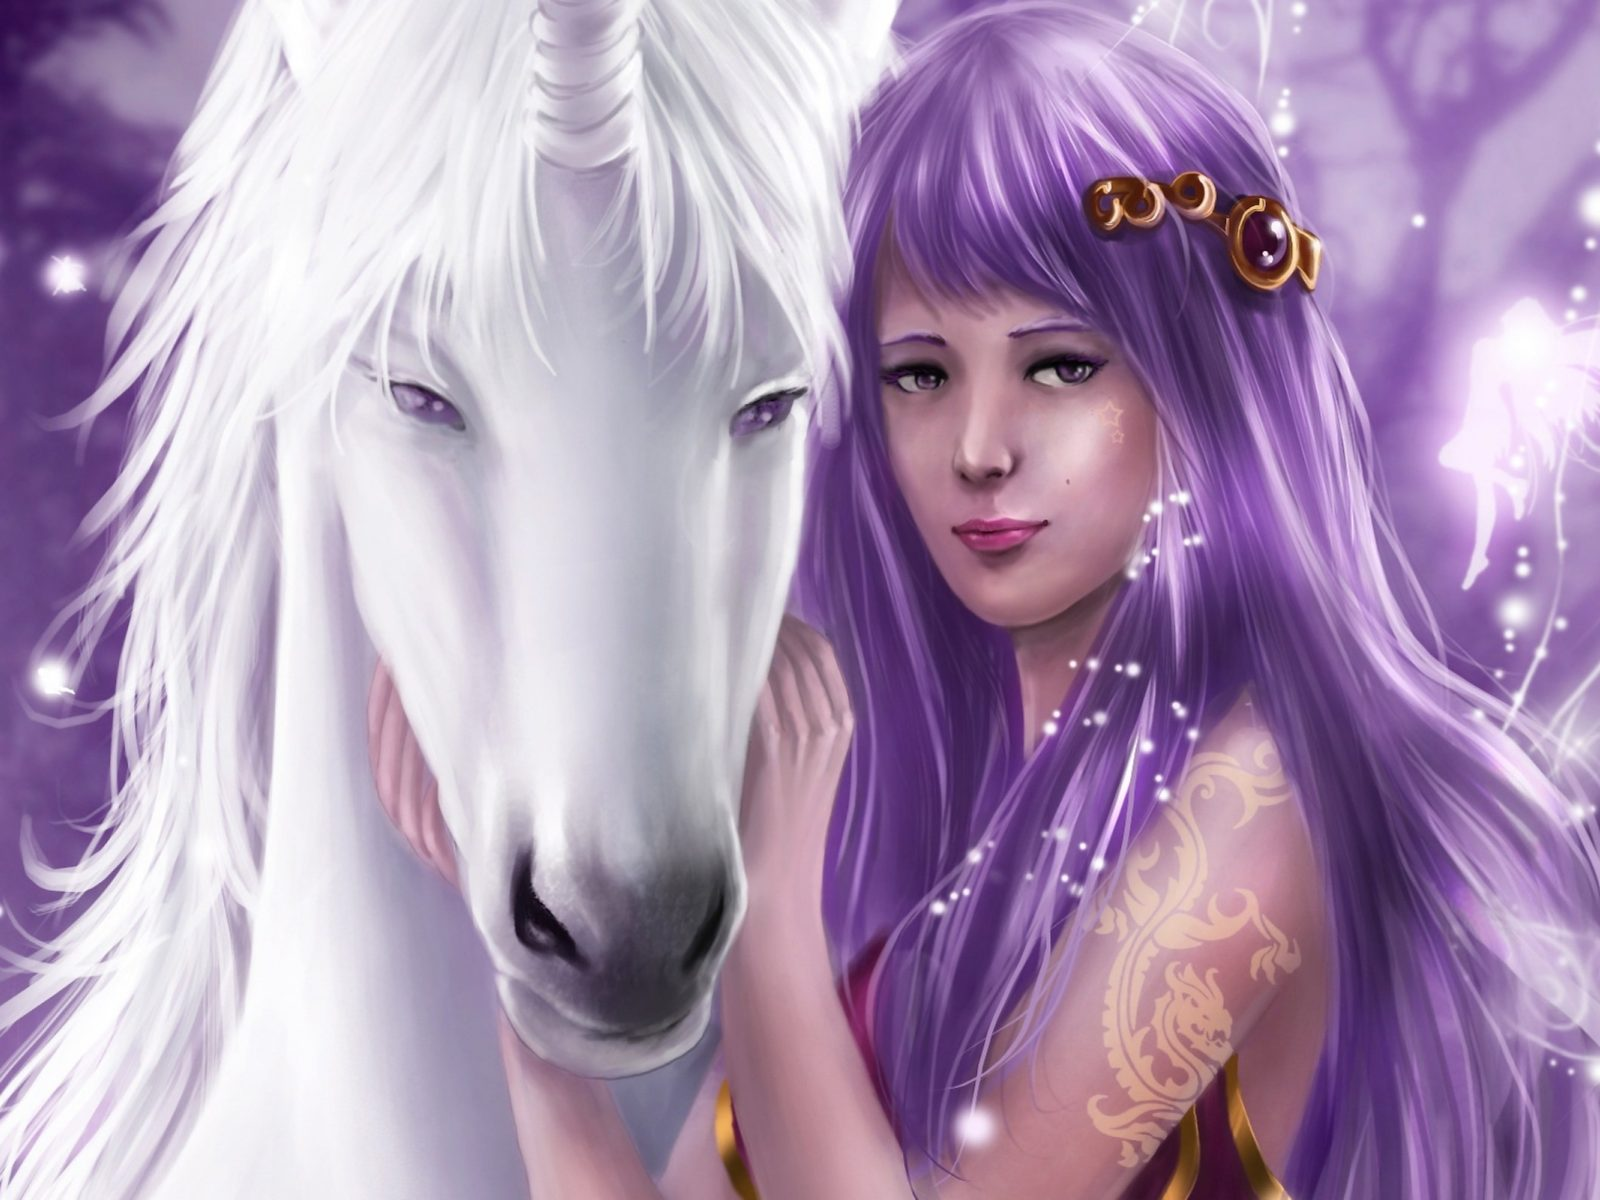 Wide Cars Wallpapers Hd 1920x1200 Pictures Girl Unicorn Horse White 2560x1600